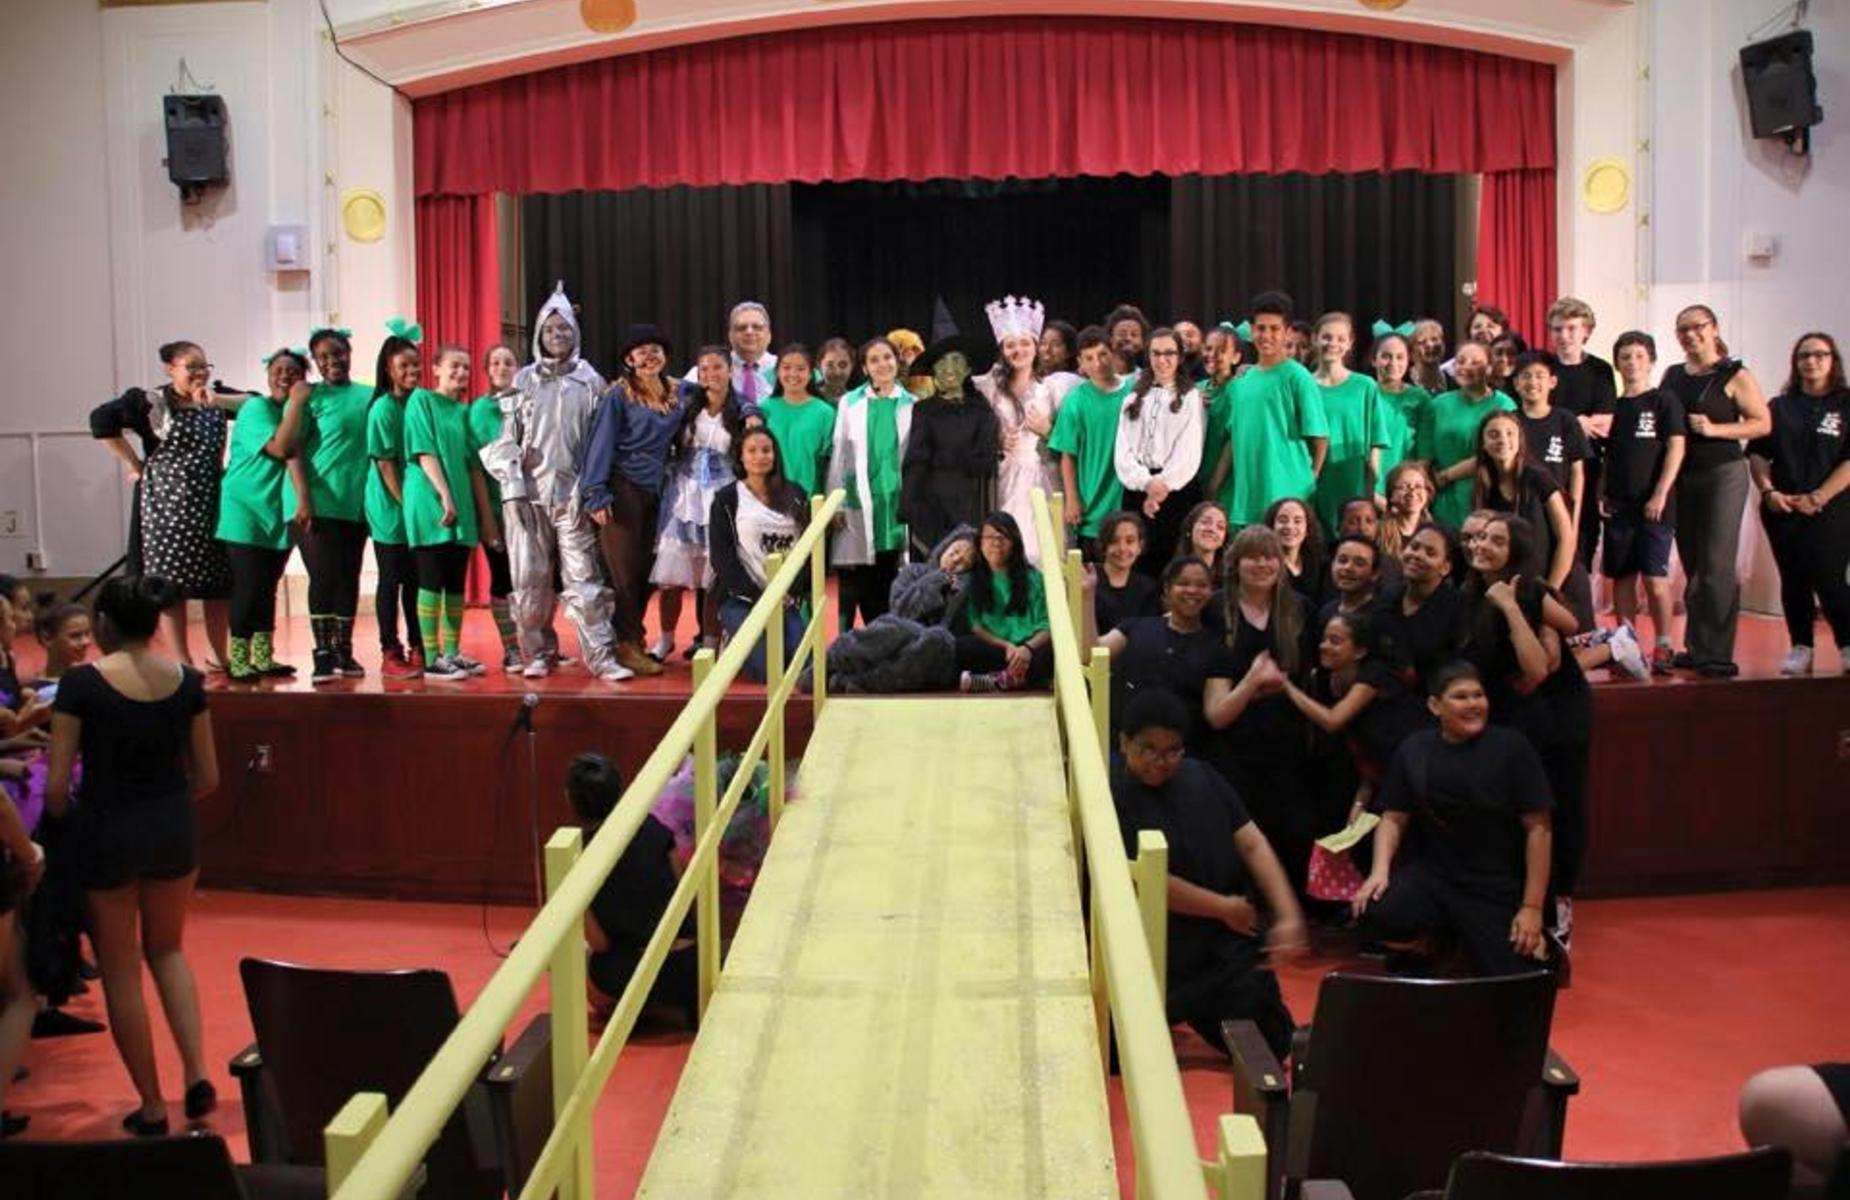 Musical Theater's performance of The Wizard of Oz